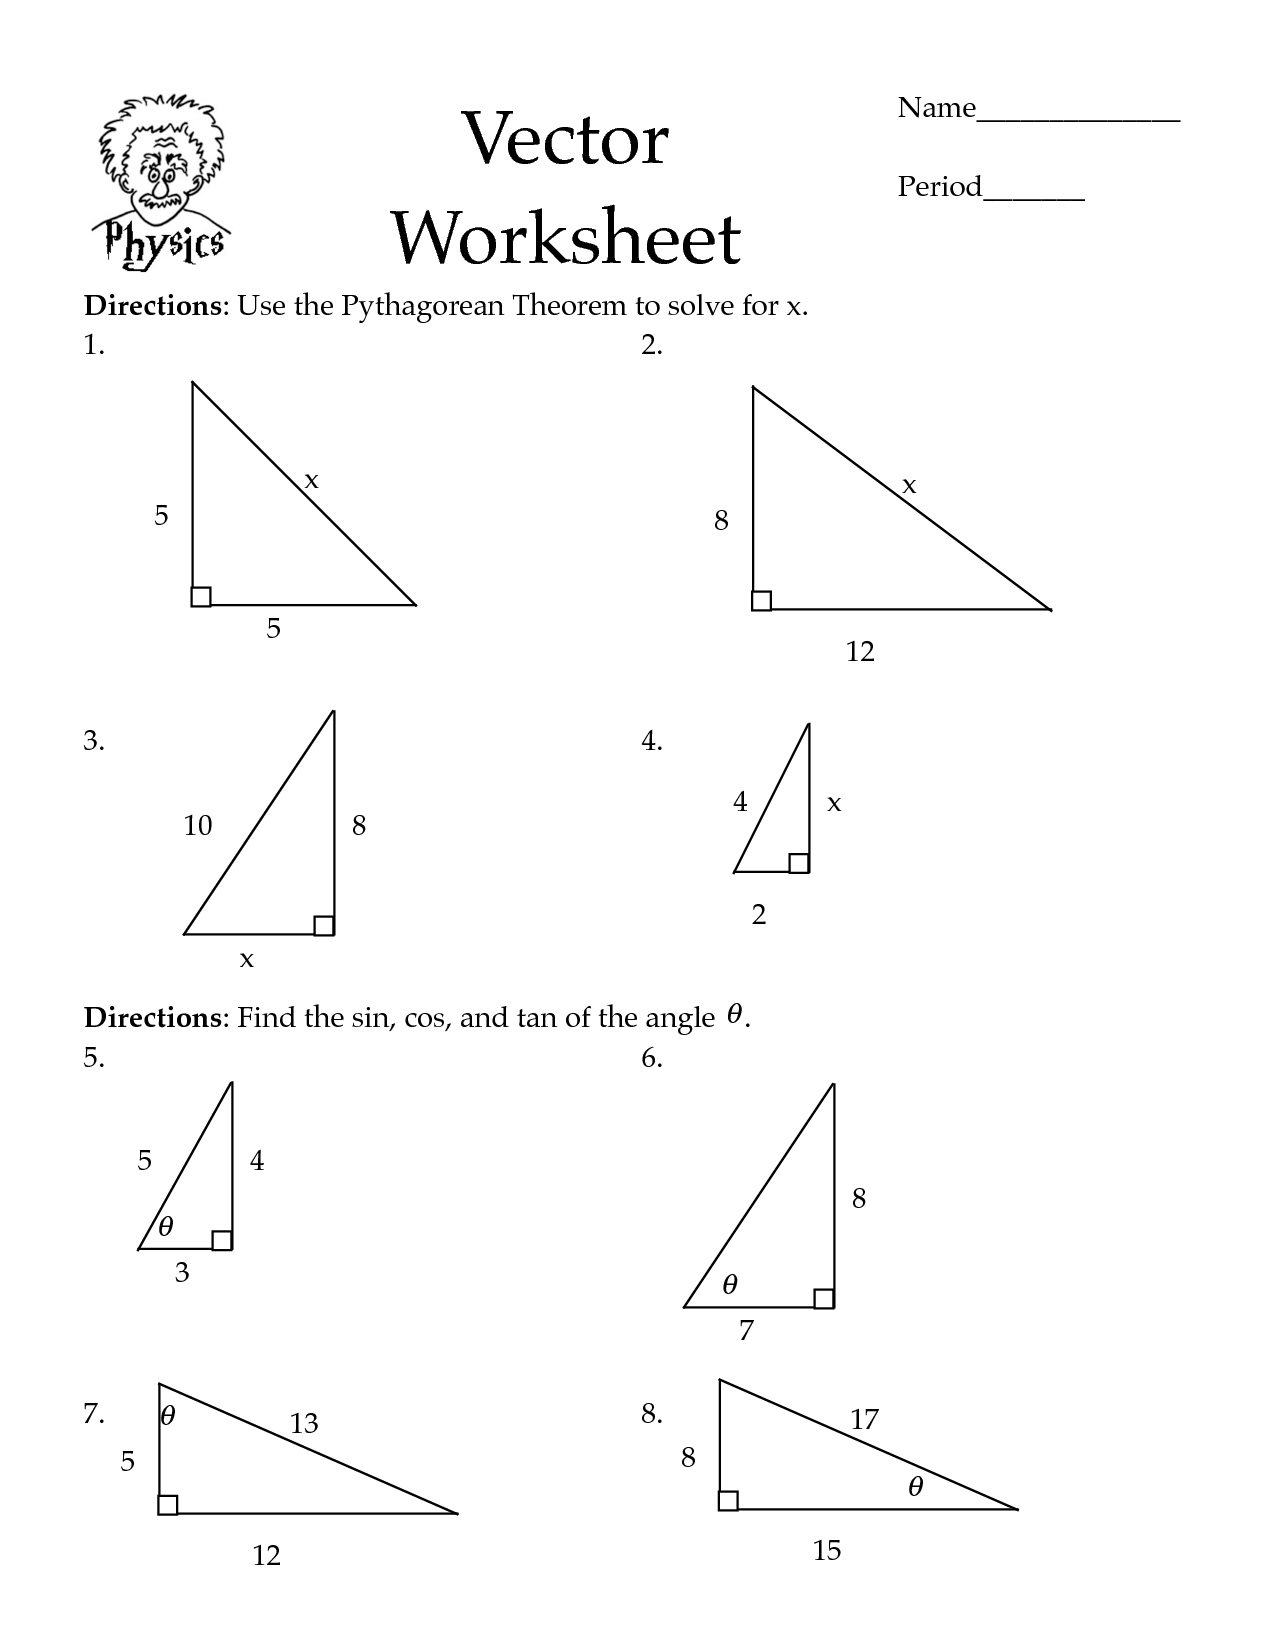 Worksheets Basic Trigonometry Worksheets pythagorean theorem worksheets cos law worksheet pdf math pdf